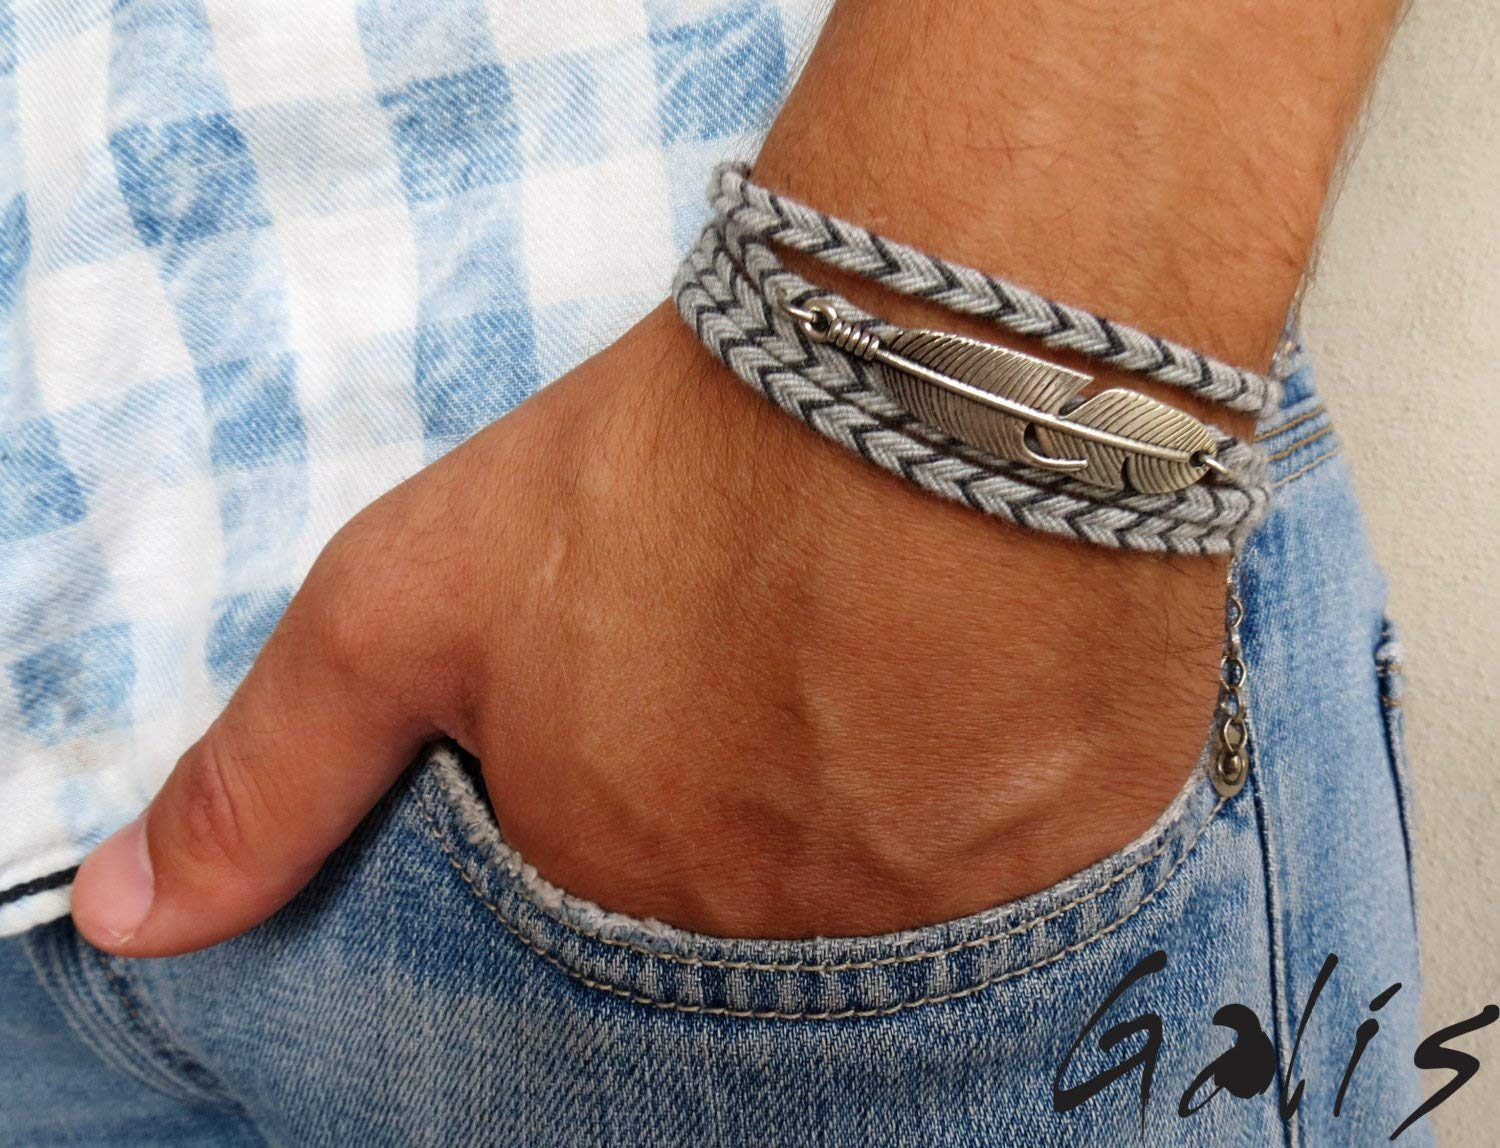 Handmade Wrap Gray Fabric Feather Bracelet For Men By Galis Jewelry - Wrap Bracelet For Men - Gray Beacelet For Men